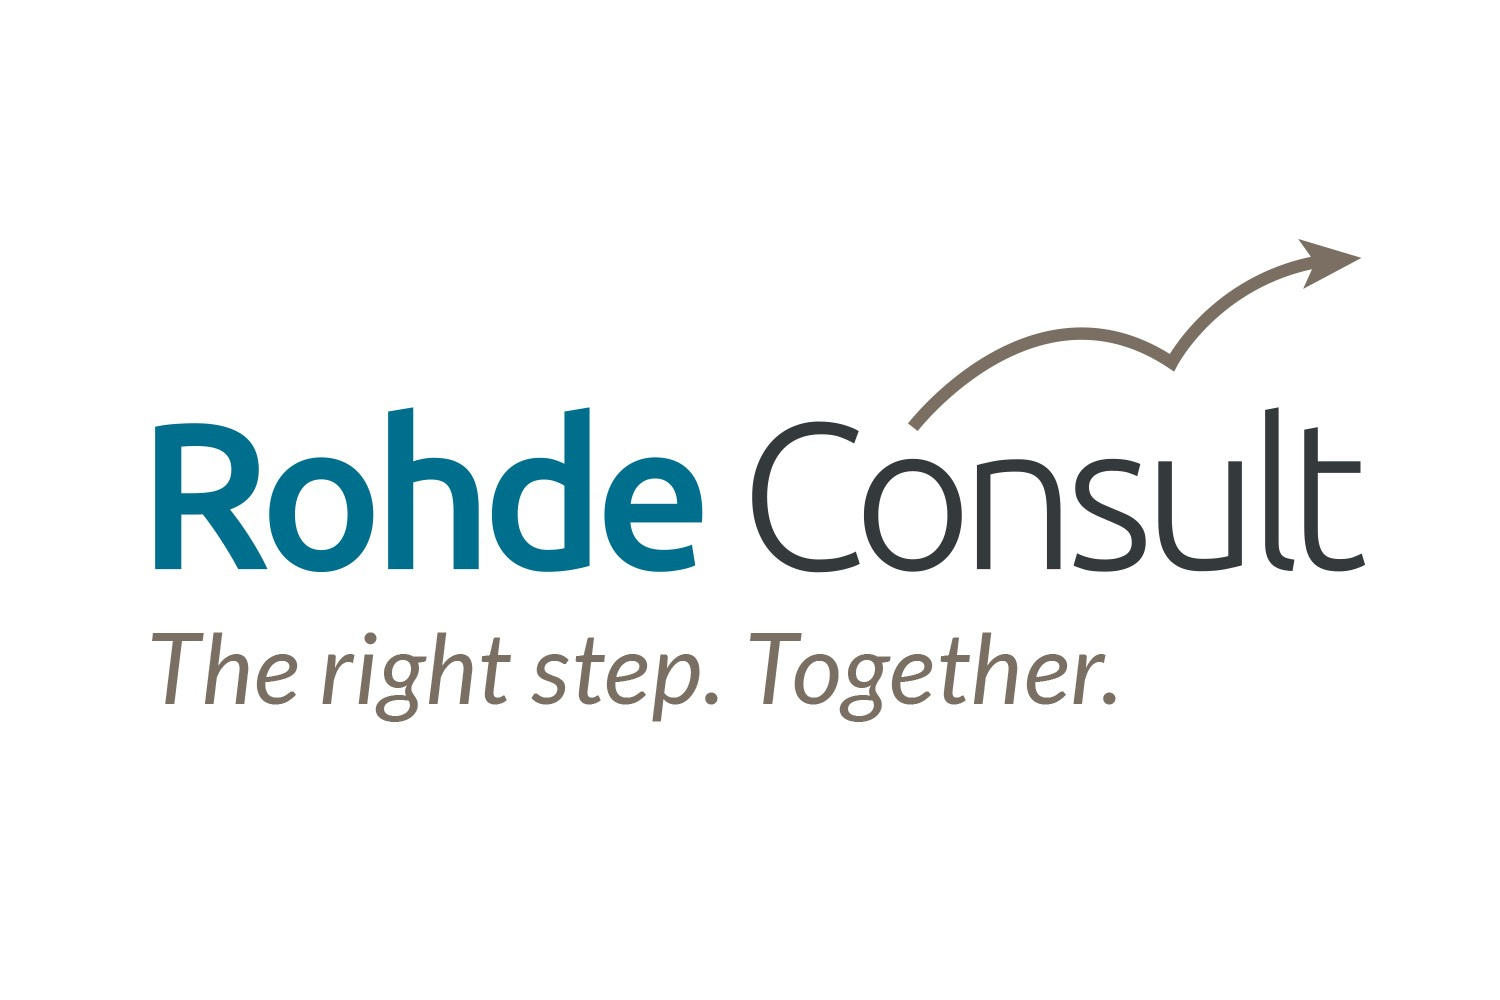 Rhode Consult. The right step. Together.